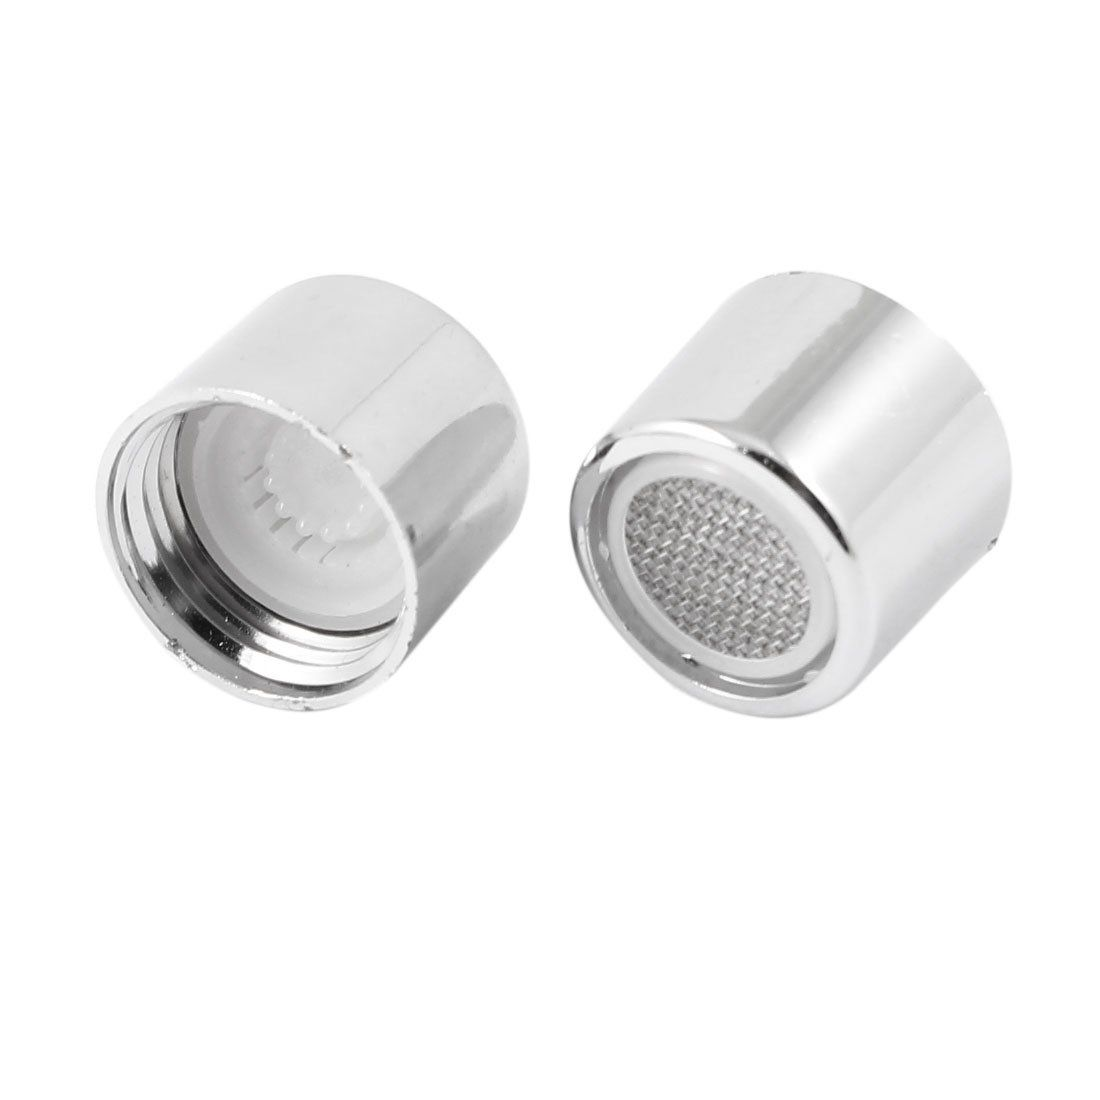 2pcs Plastic Water Saving Faucet Tap Spout Aerator Filter Net